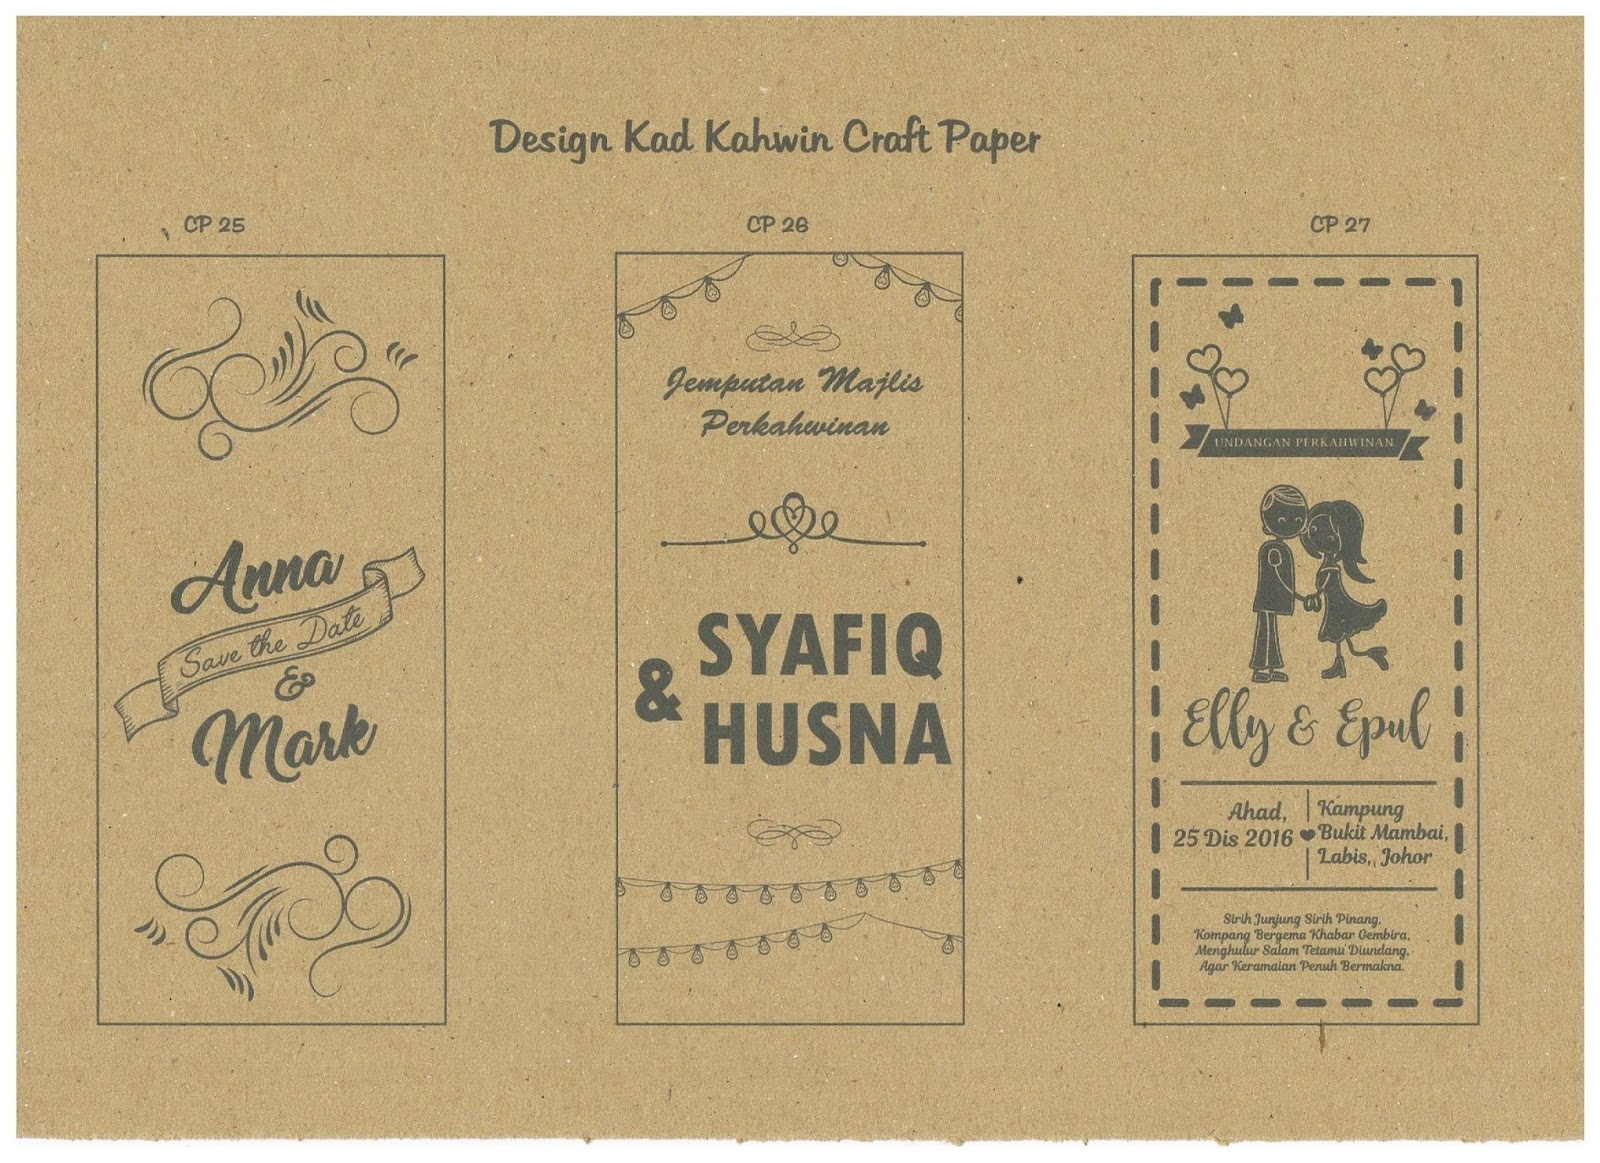 Isr Design Printing Kad Kahwin Craft Paper